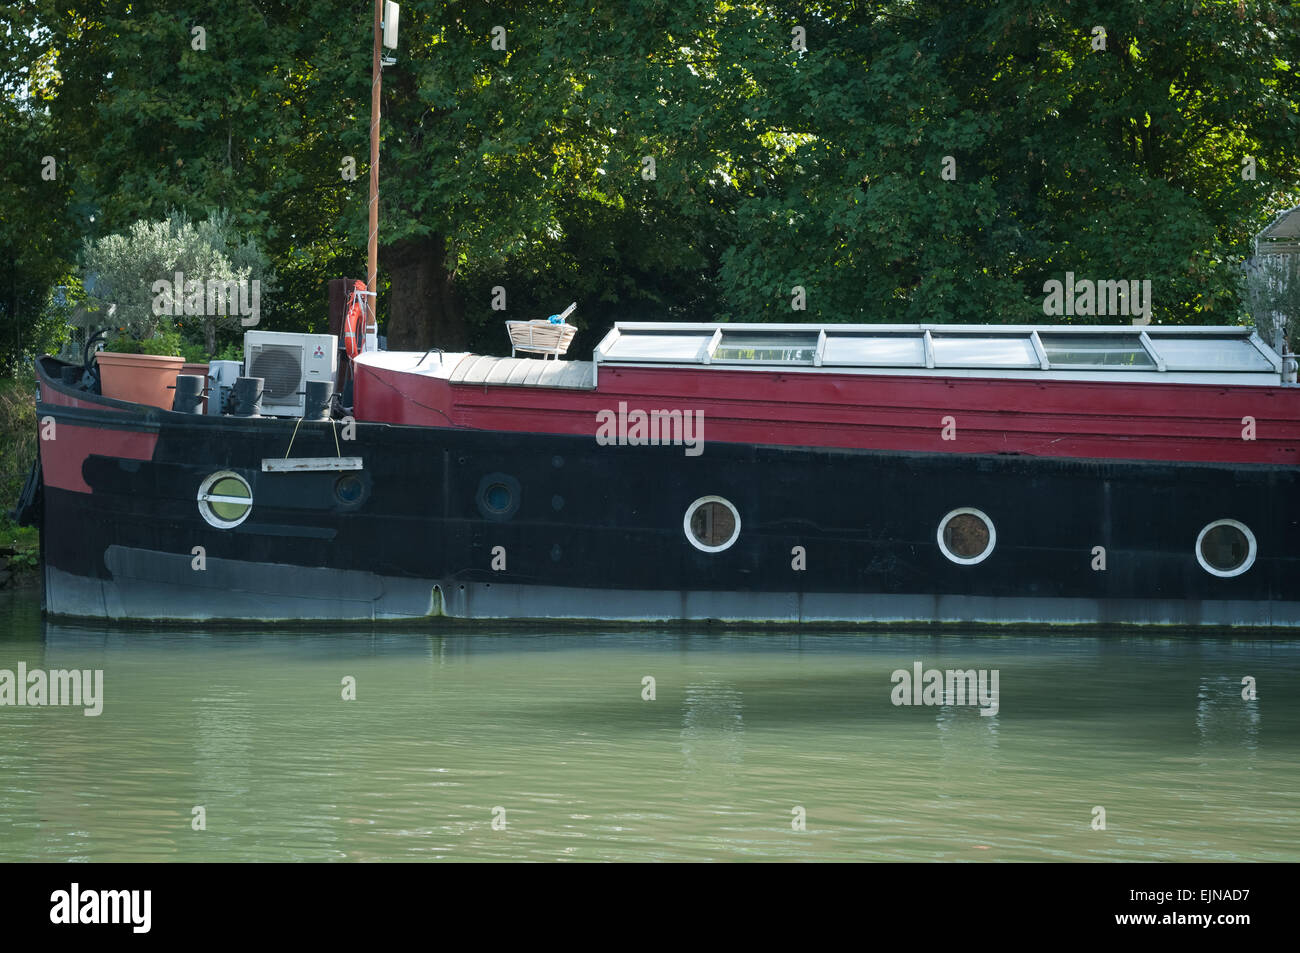 Down the river by boat.... The Marne river, on the parisian suburbs, Joinville le pont city, ile-de-france region, Stock Photo